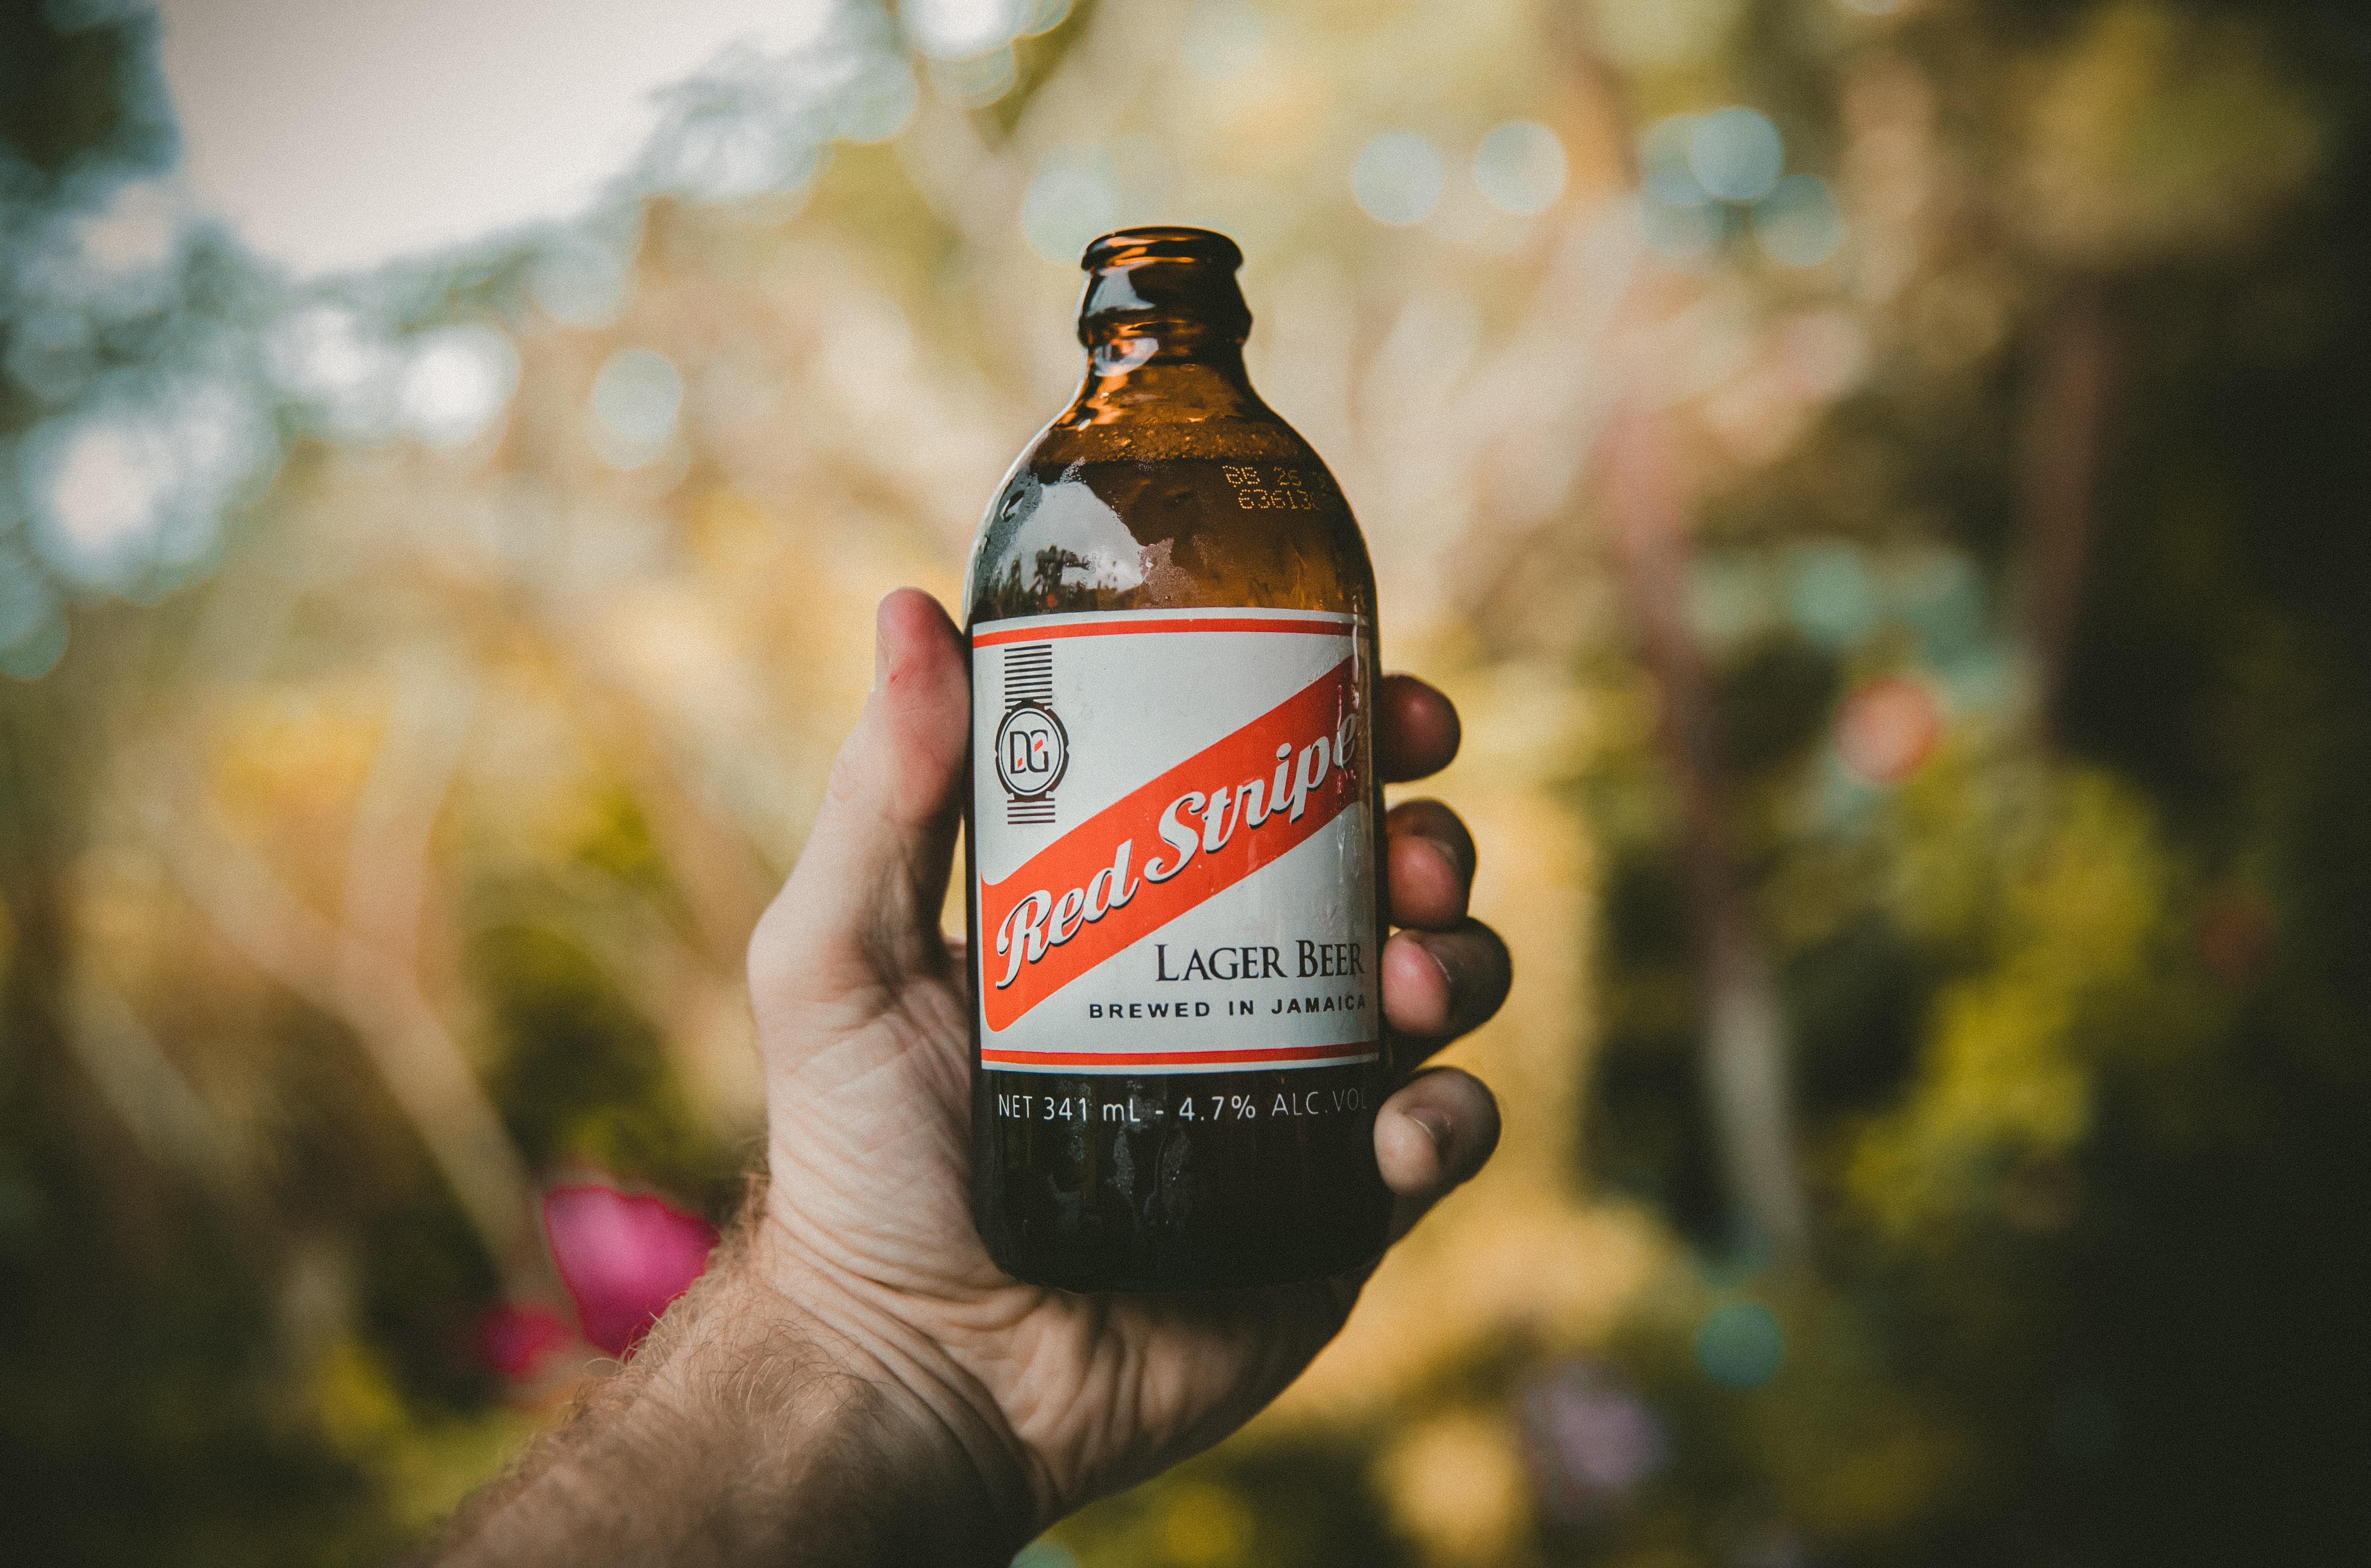 A man holding a Red Stripe beer in a glass bottle in Jamaica